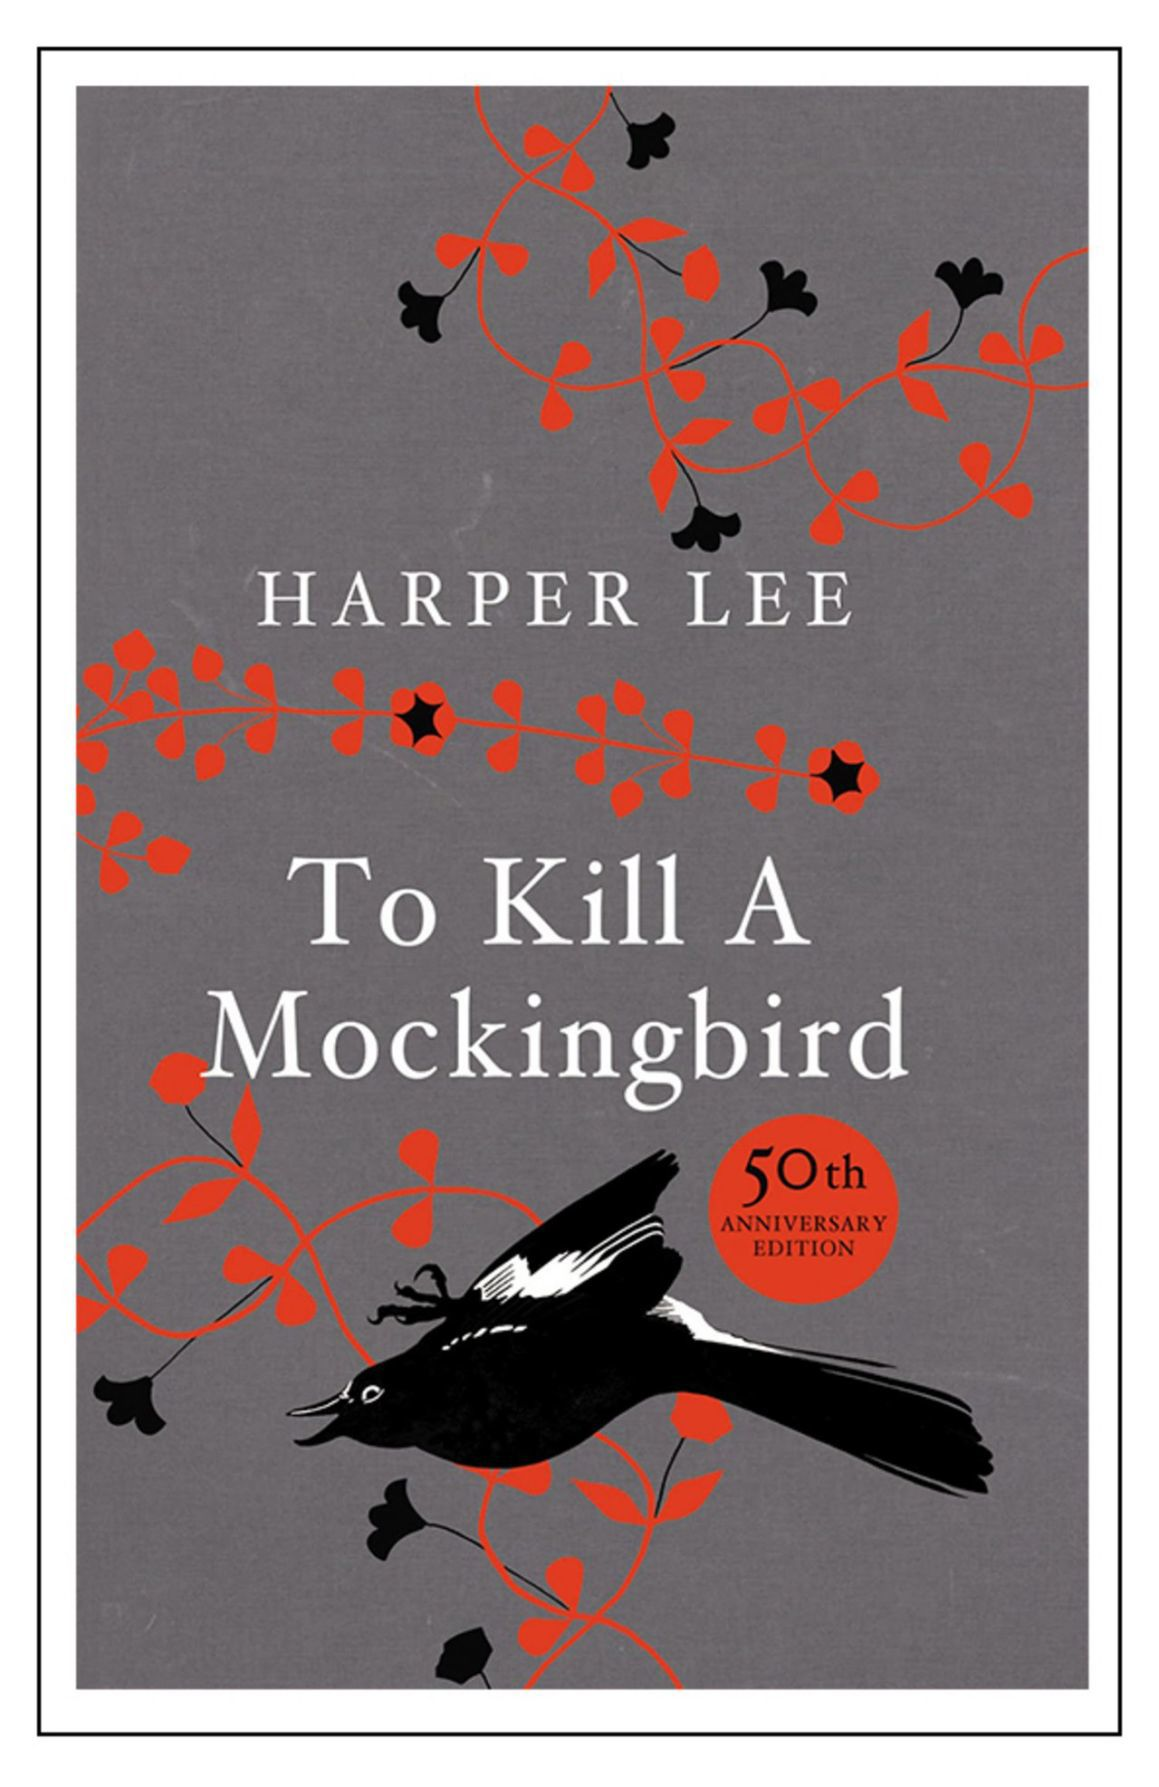 to kill a mockingbird essays on perspective From a biblical point of view, to kill a mockingbird, presents a kind of moral culture, particularly as observed in the moral codes displayed by atticus finch, the defense attorney, and his children this paper discusses the implied moral culture from a biblical perspective.